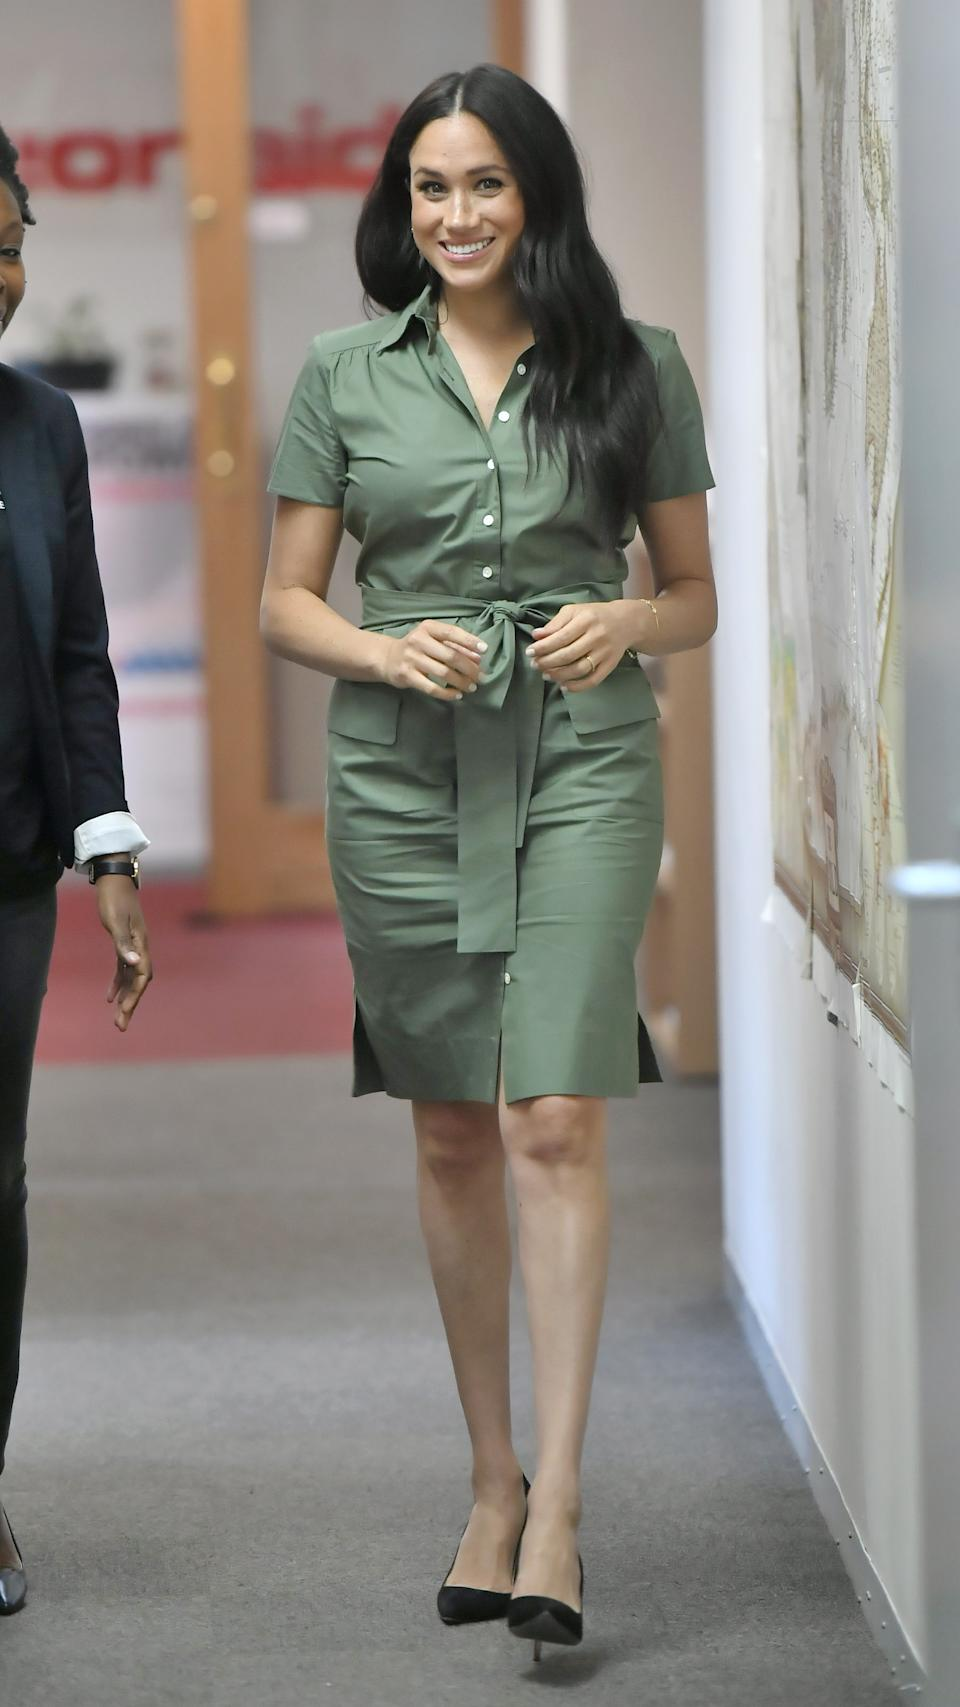 Meghan visits ActionAid during the royal tour of South Africa [Photo: Getty]